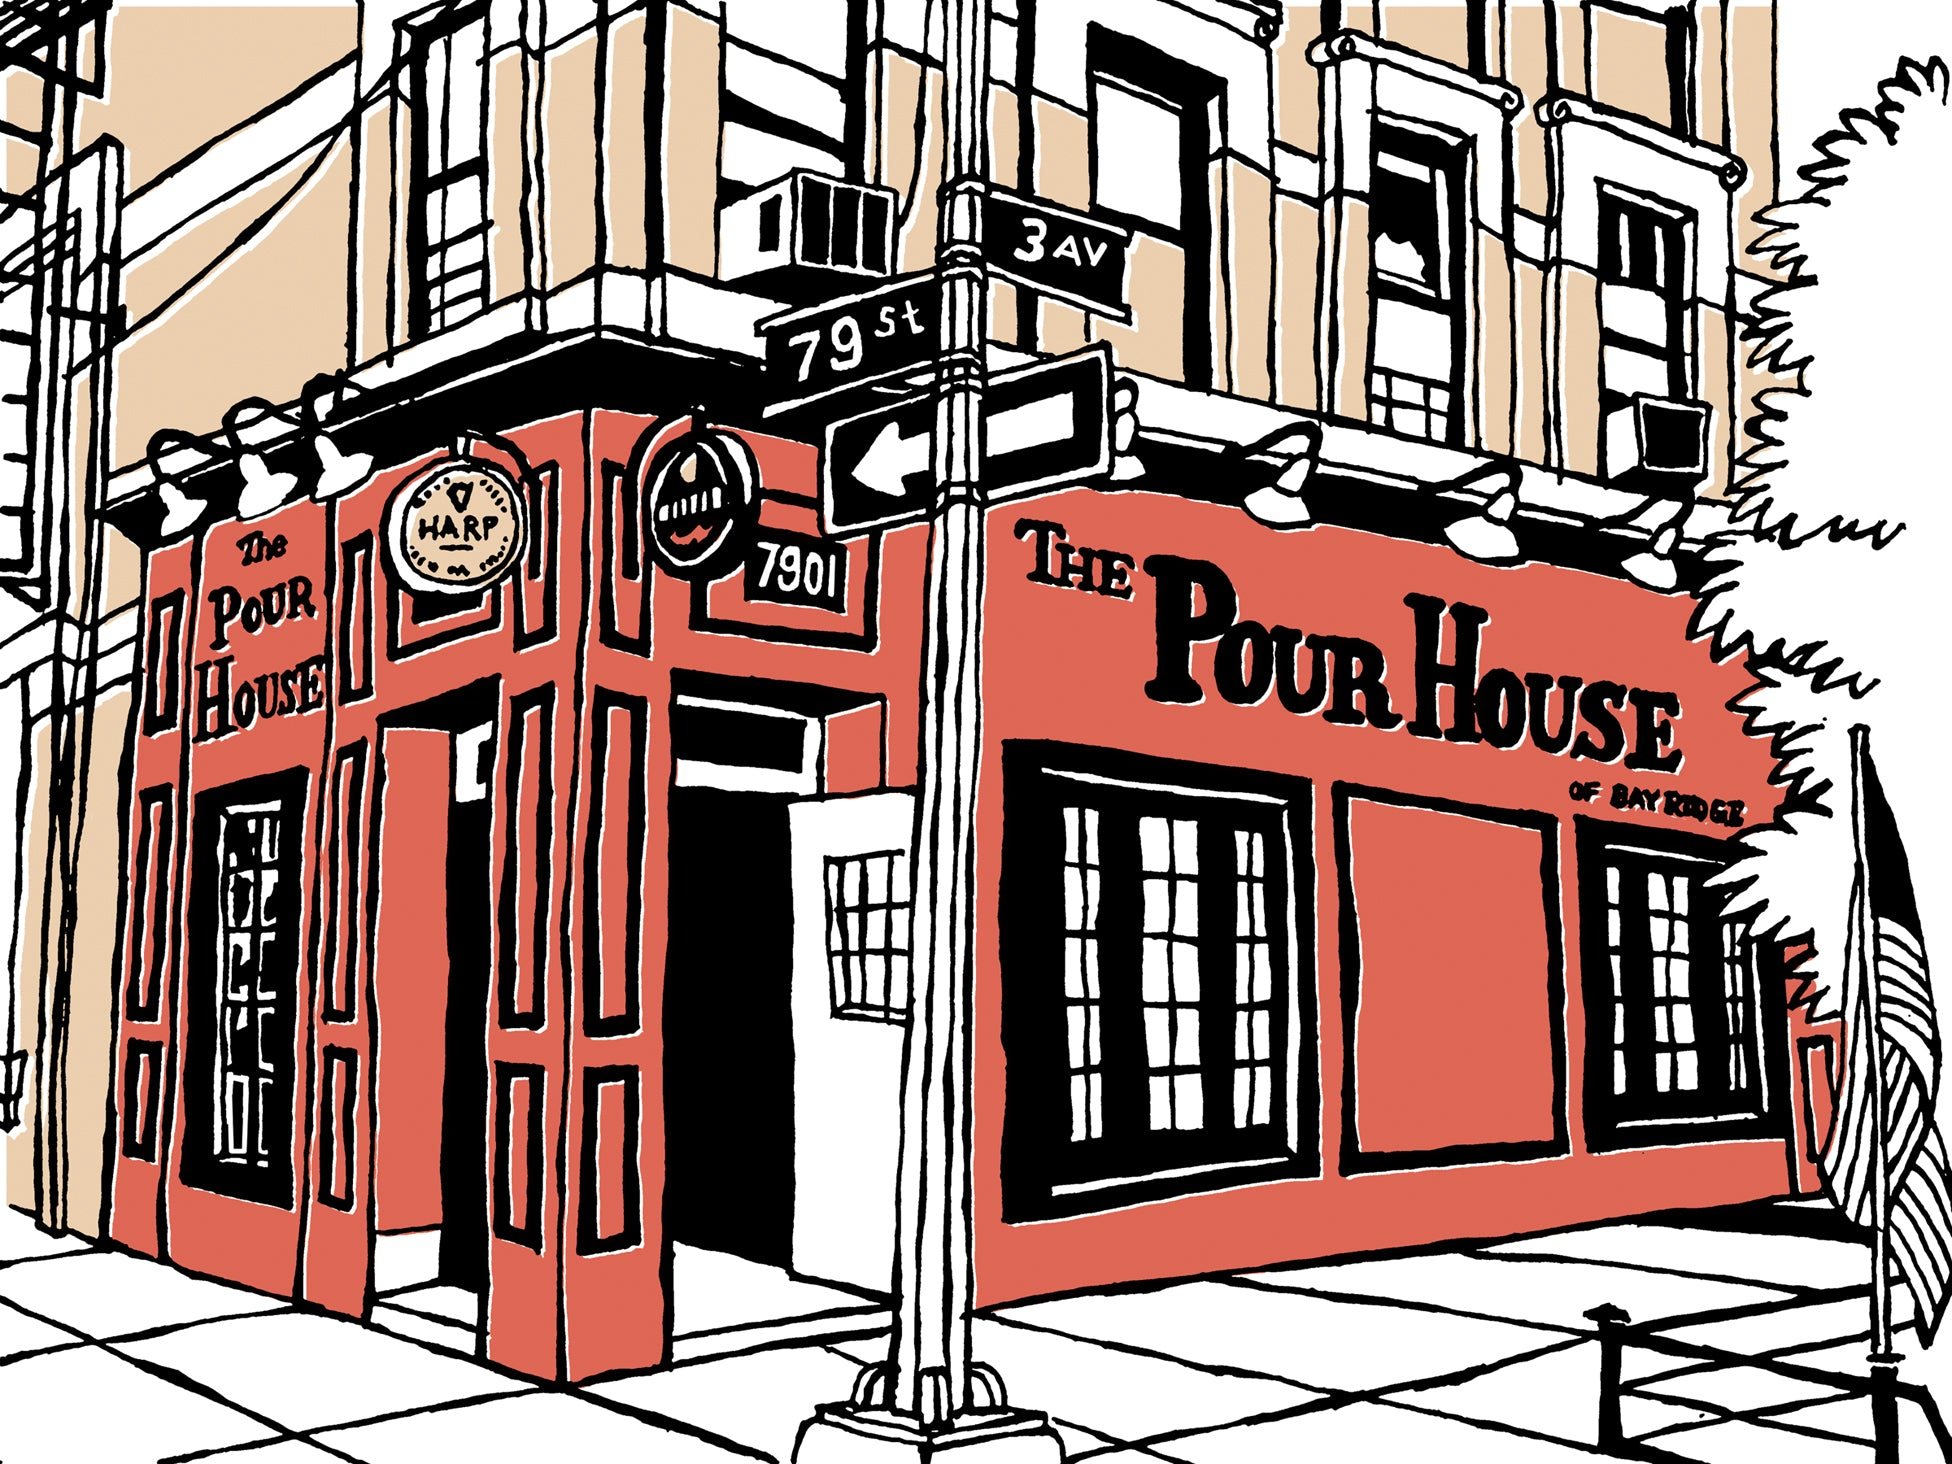 pour house of bay ridge nyc art by john tebeau